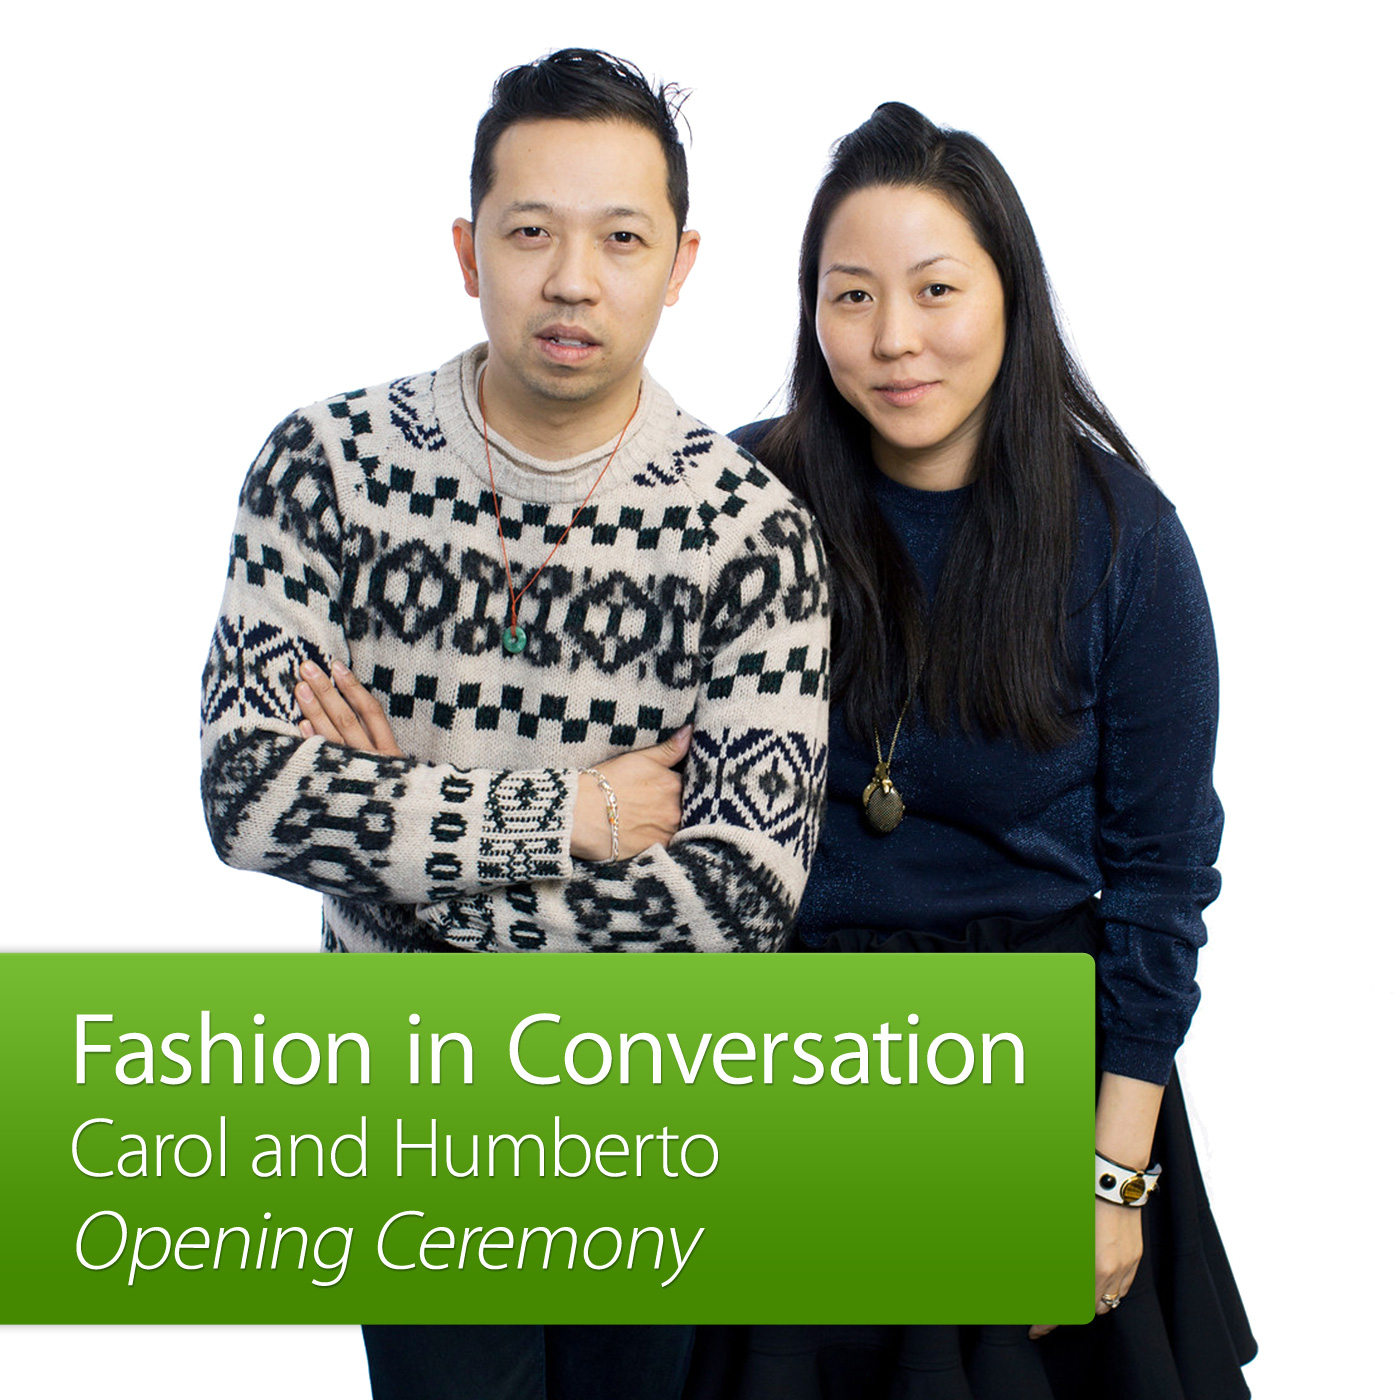 Carol and Humberto, Opening Ceremony: Fashion in Conversation